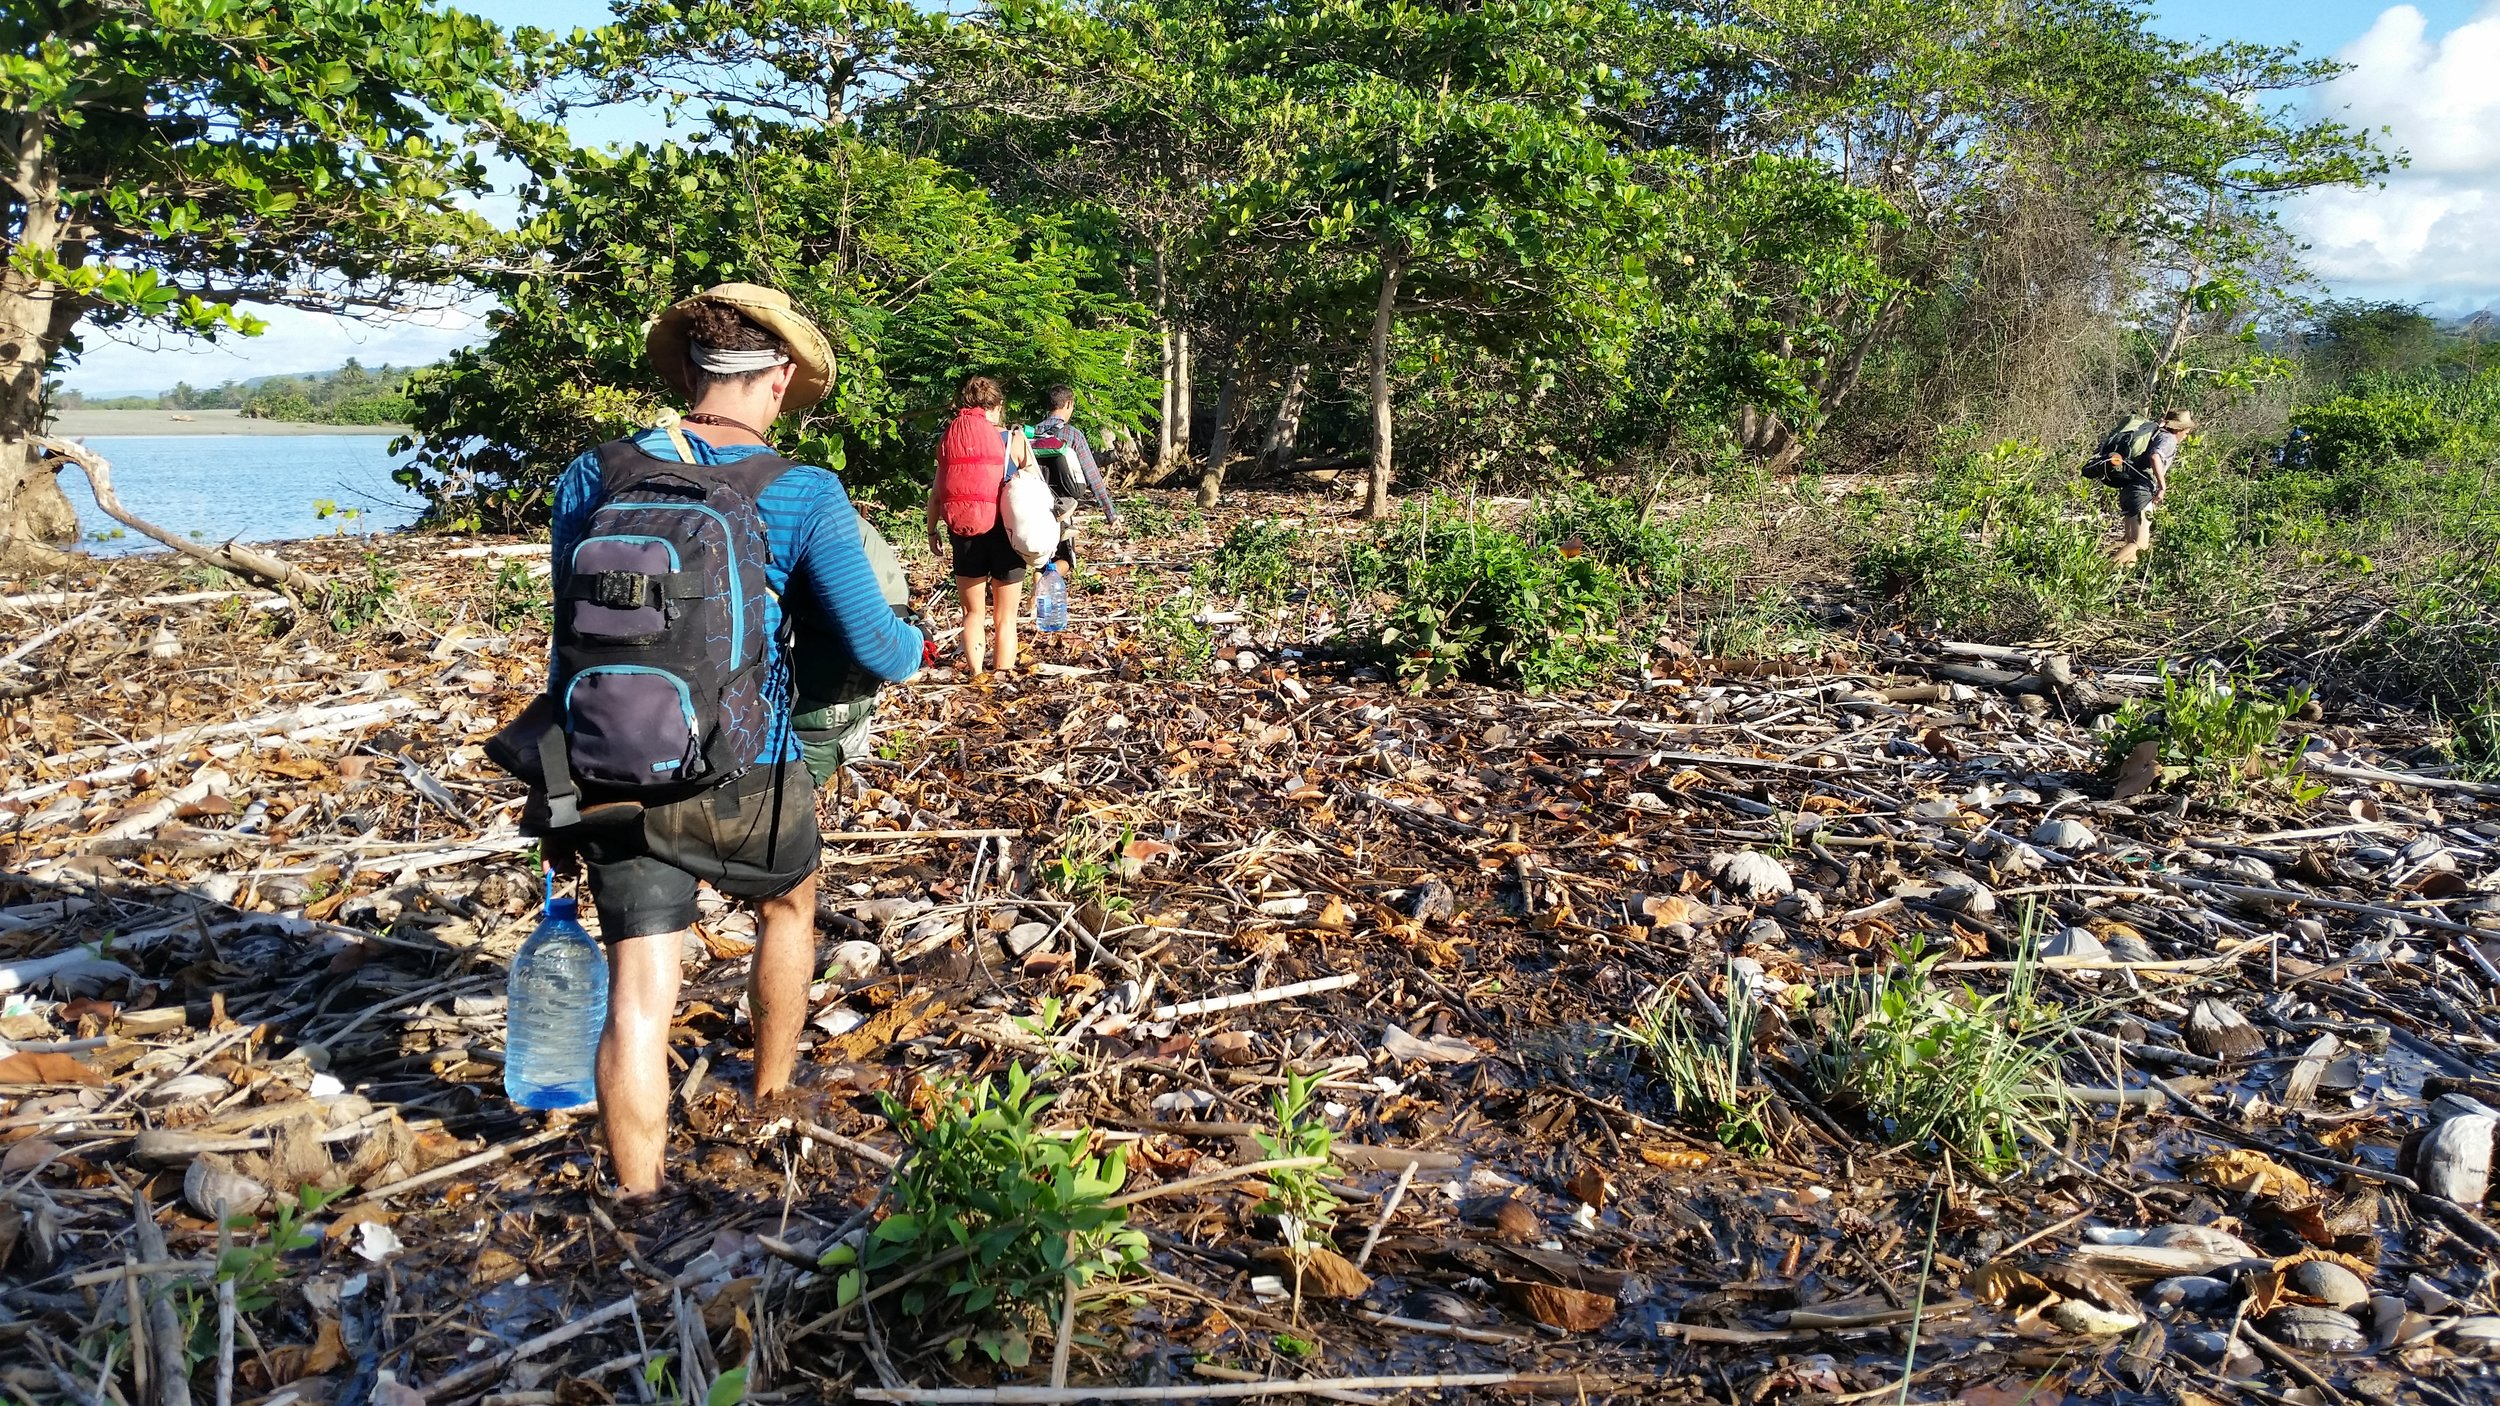 Hiking through thousands of coconut shells and a flooded coast to our next site